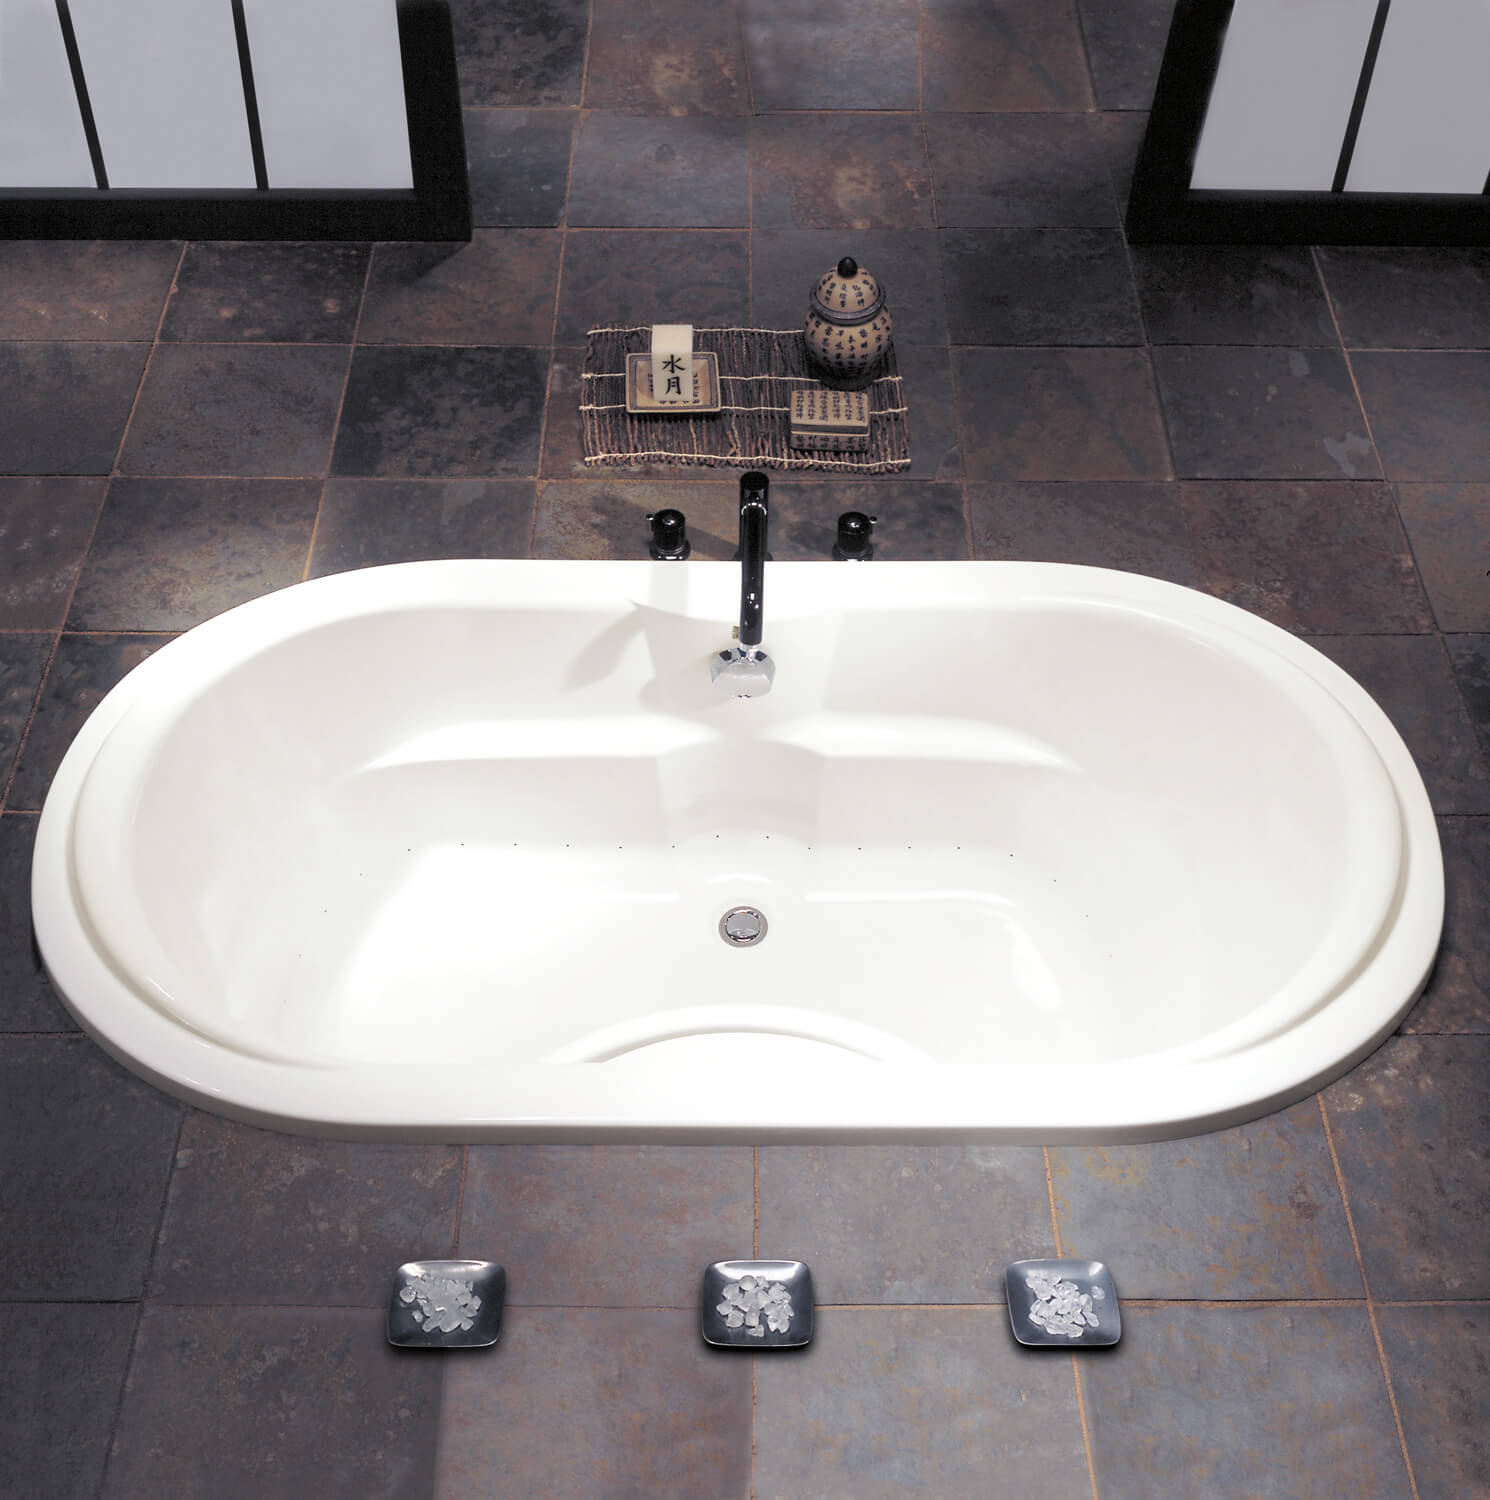 Bainultra Thermal 55 Oval two person drop-in air jet bathtub for your modern bathroom